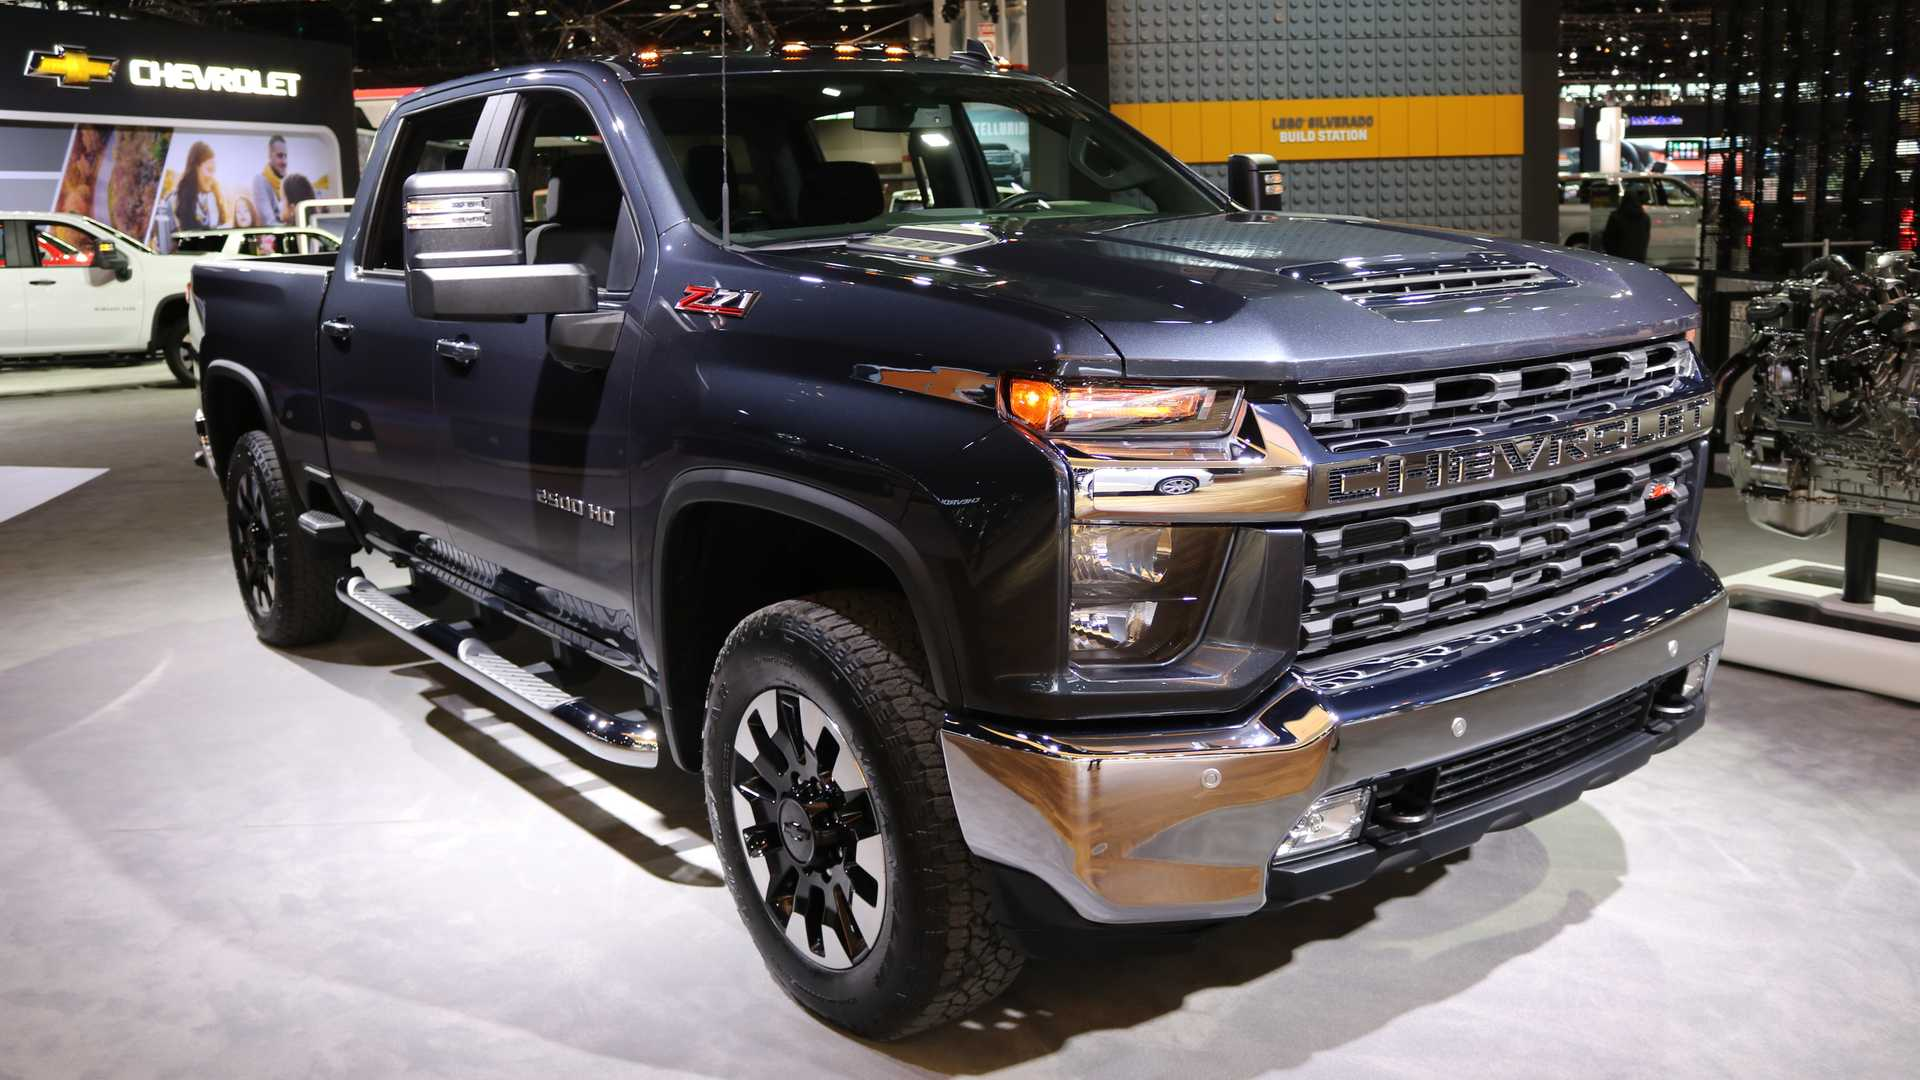 36 Best Review Gm Chevrolet 2020 Redesign with Gm Chevrolet 2020